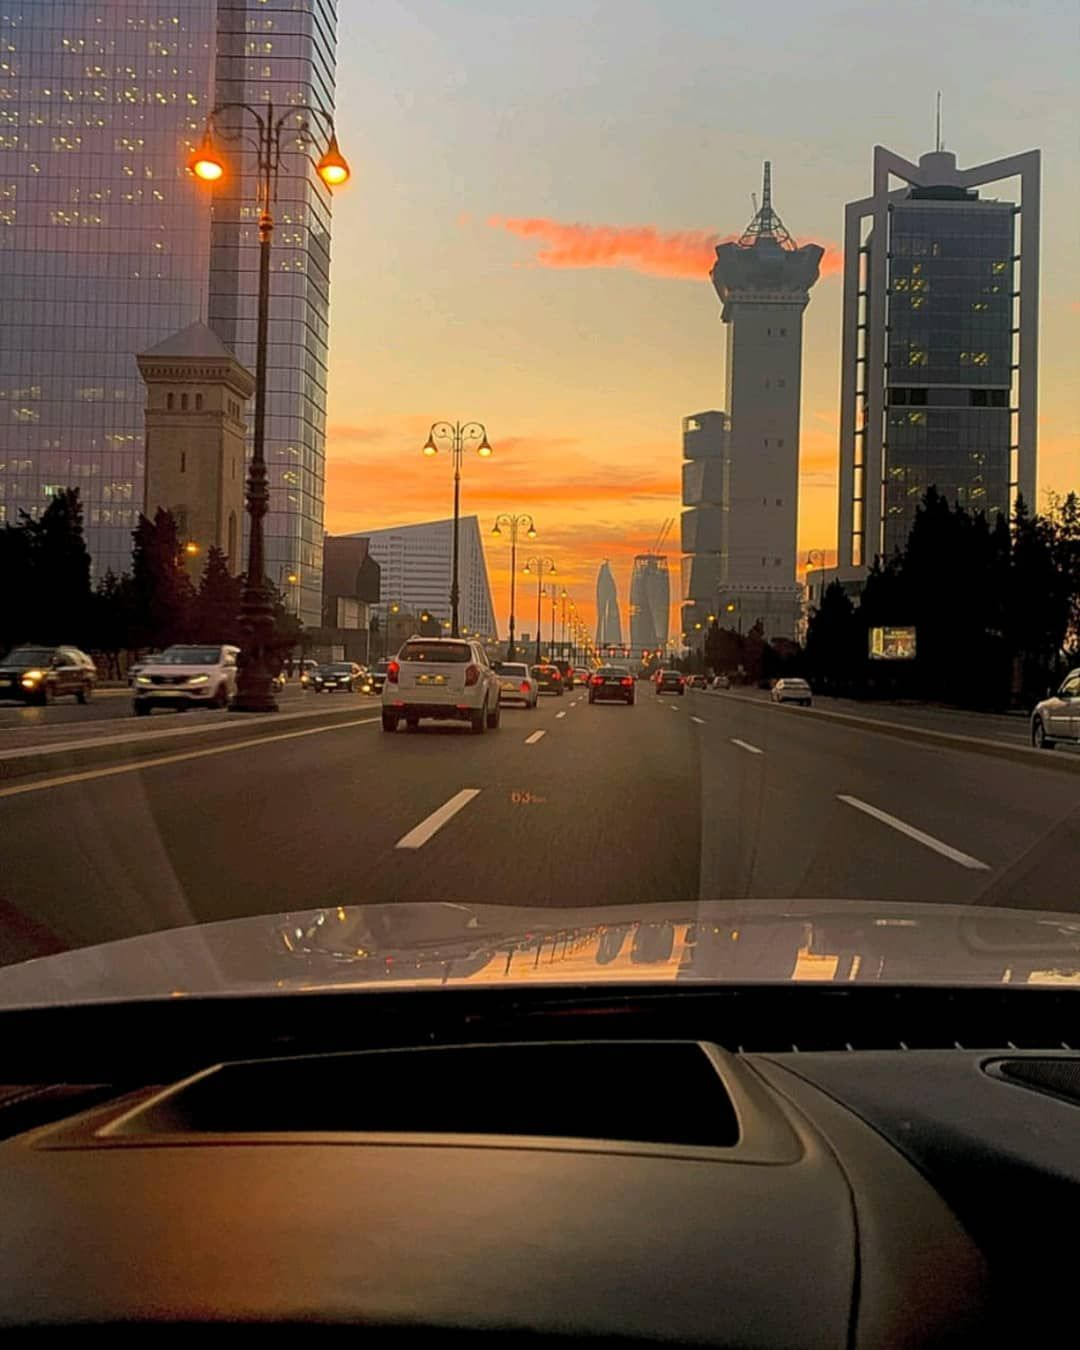 Azerbaijan On Instagram Baku From The Car Window Sunset And Weekend Little Relaxing Tag A Friend Baku Azerba Baku City Baku Azerbaijan Baku